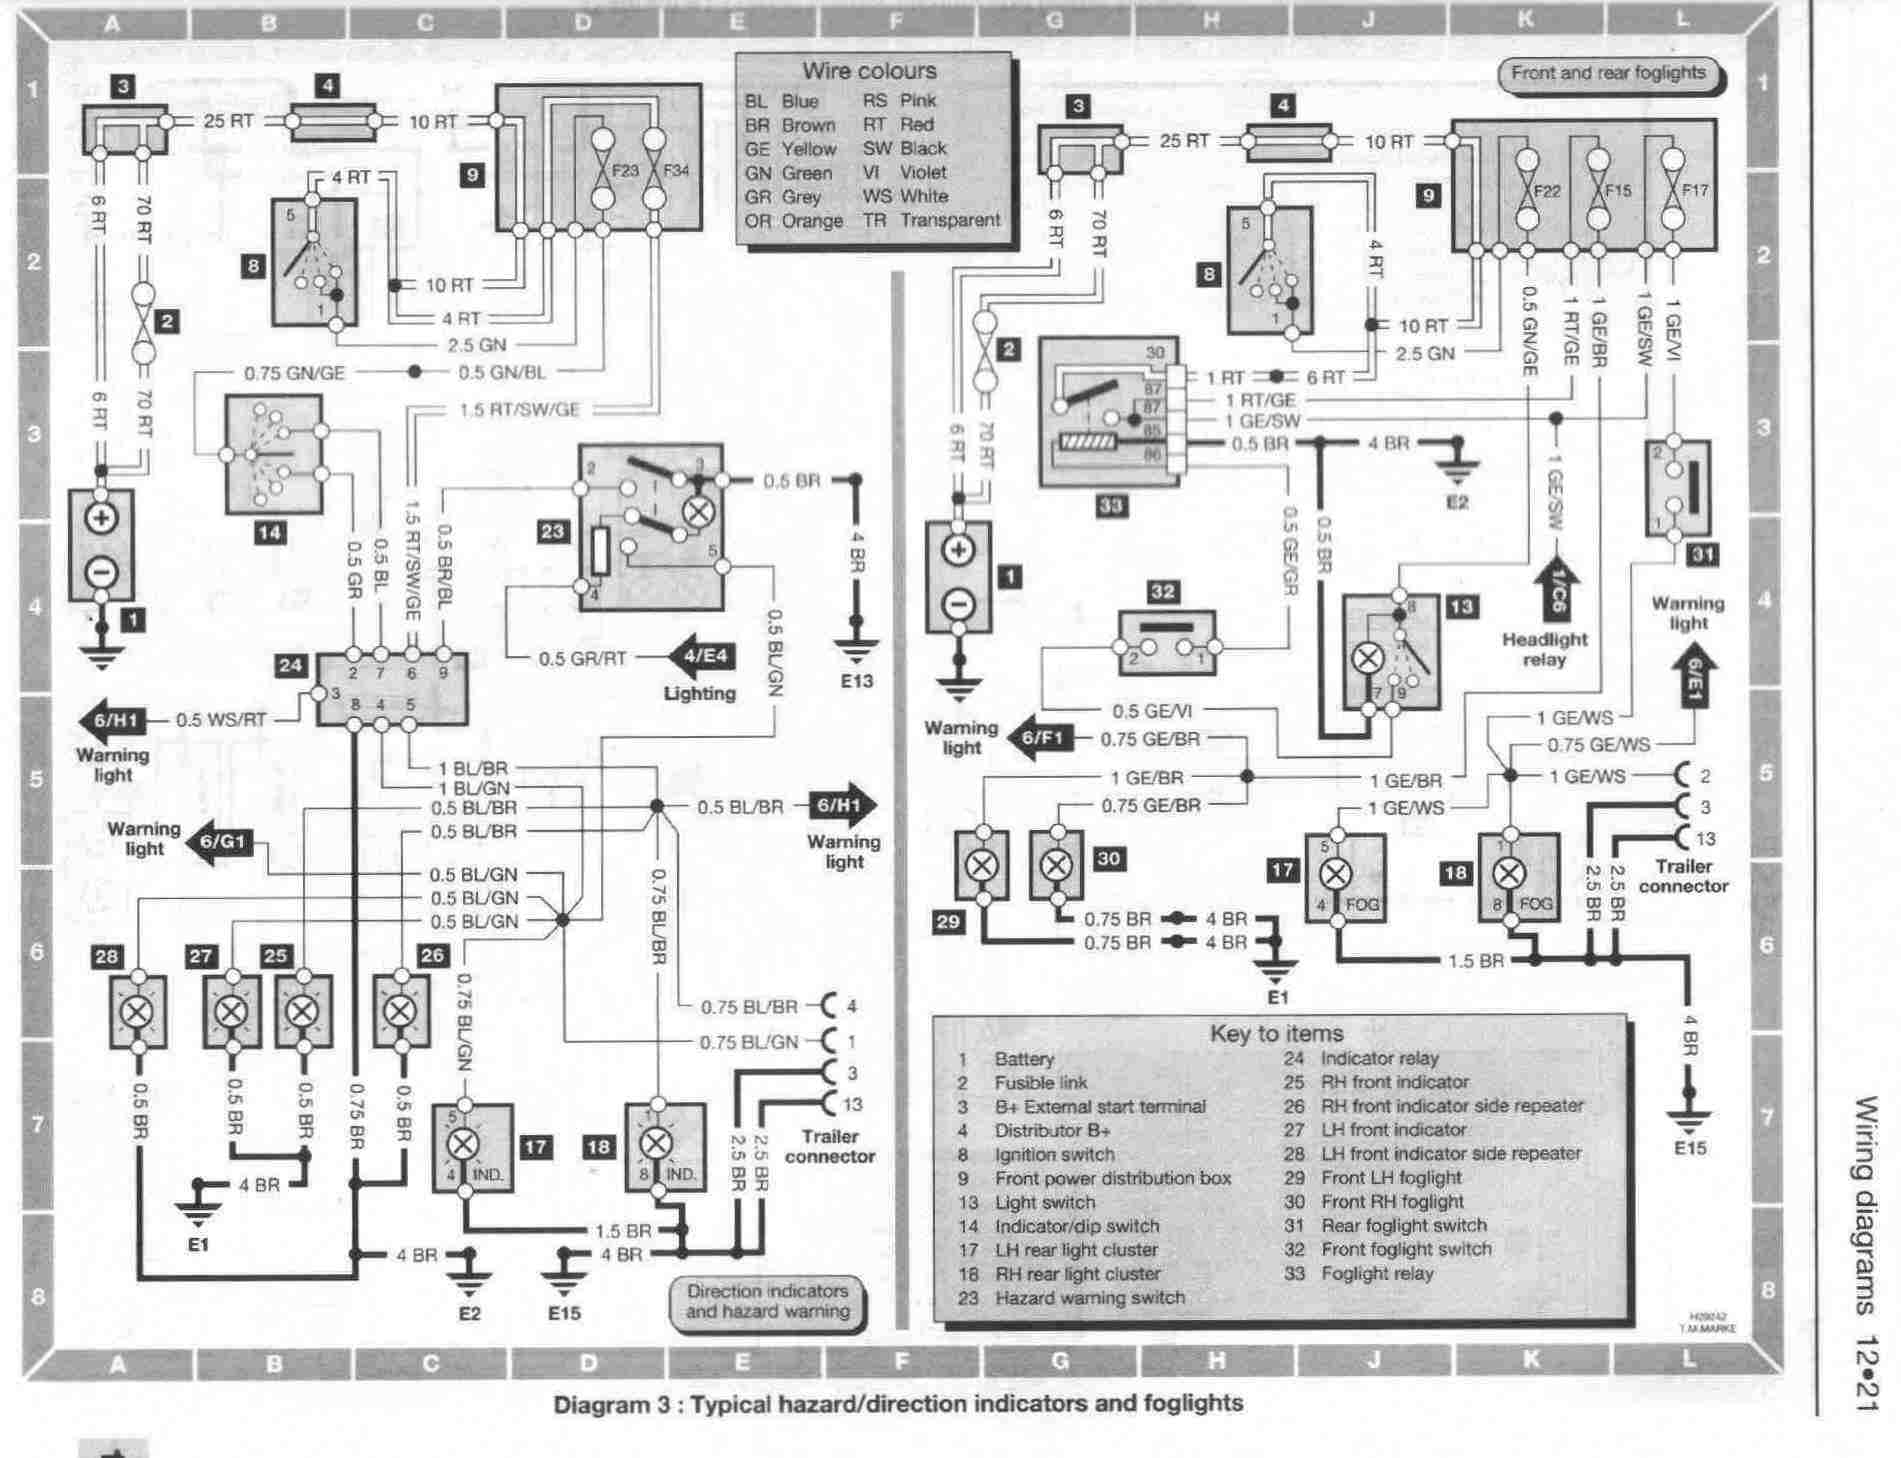 foglamp wiring international harvester farmall ih 826 tractor repair shop 1997 international 4700 wiring diagram at soozxer.org